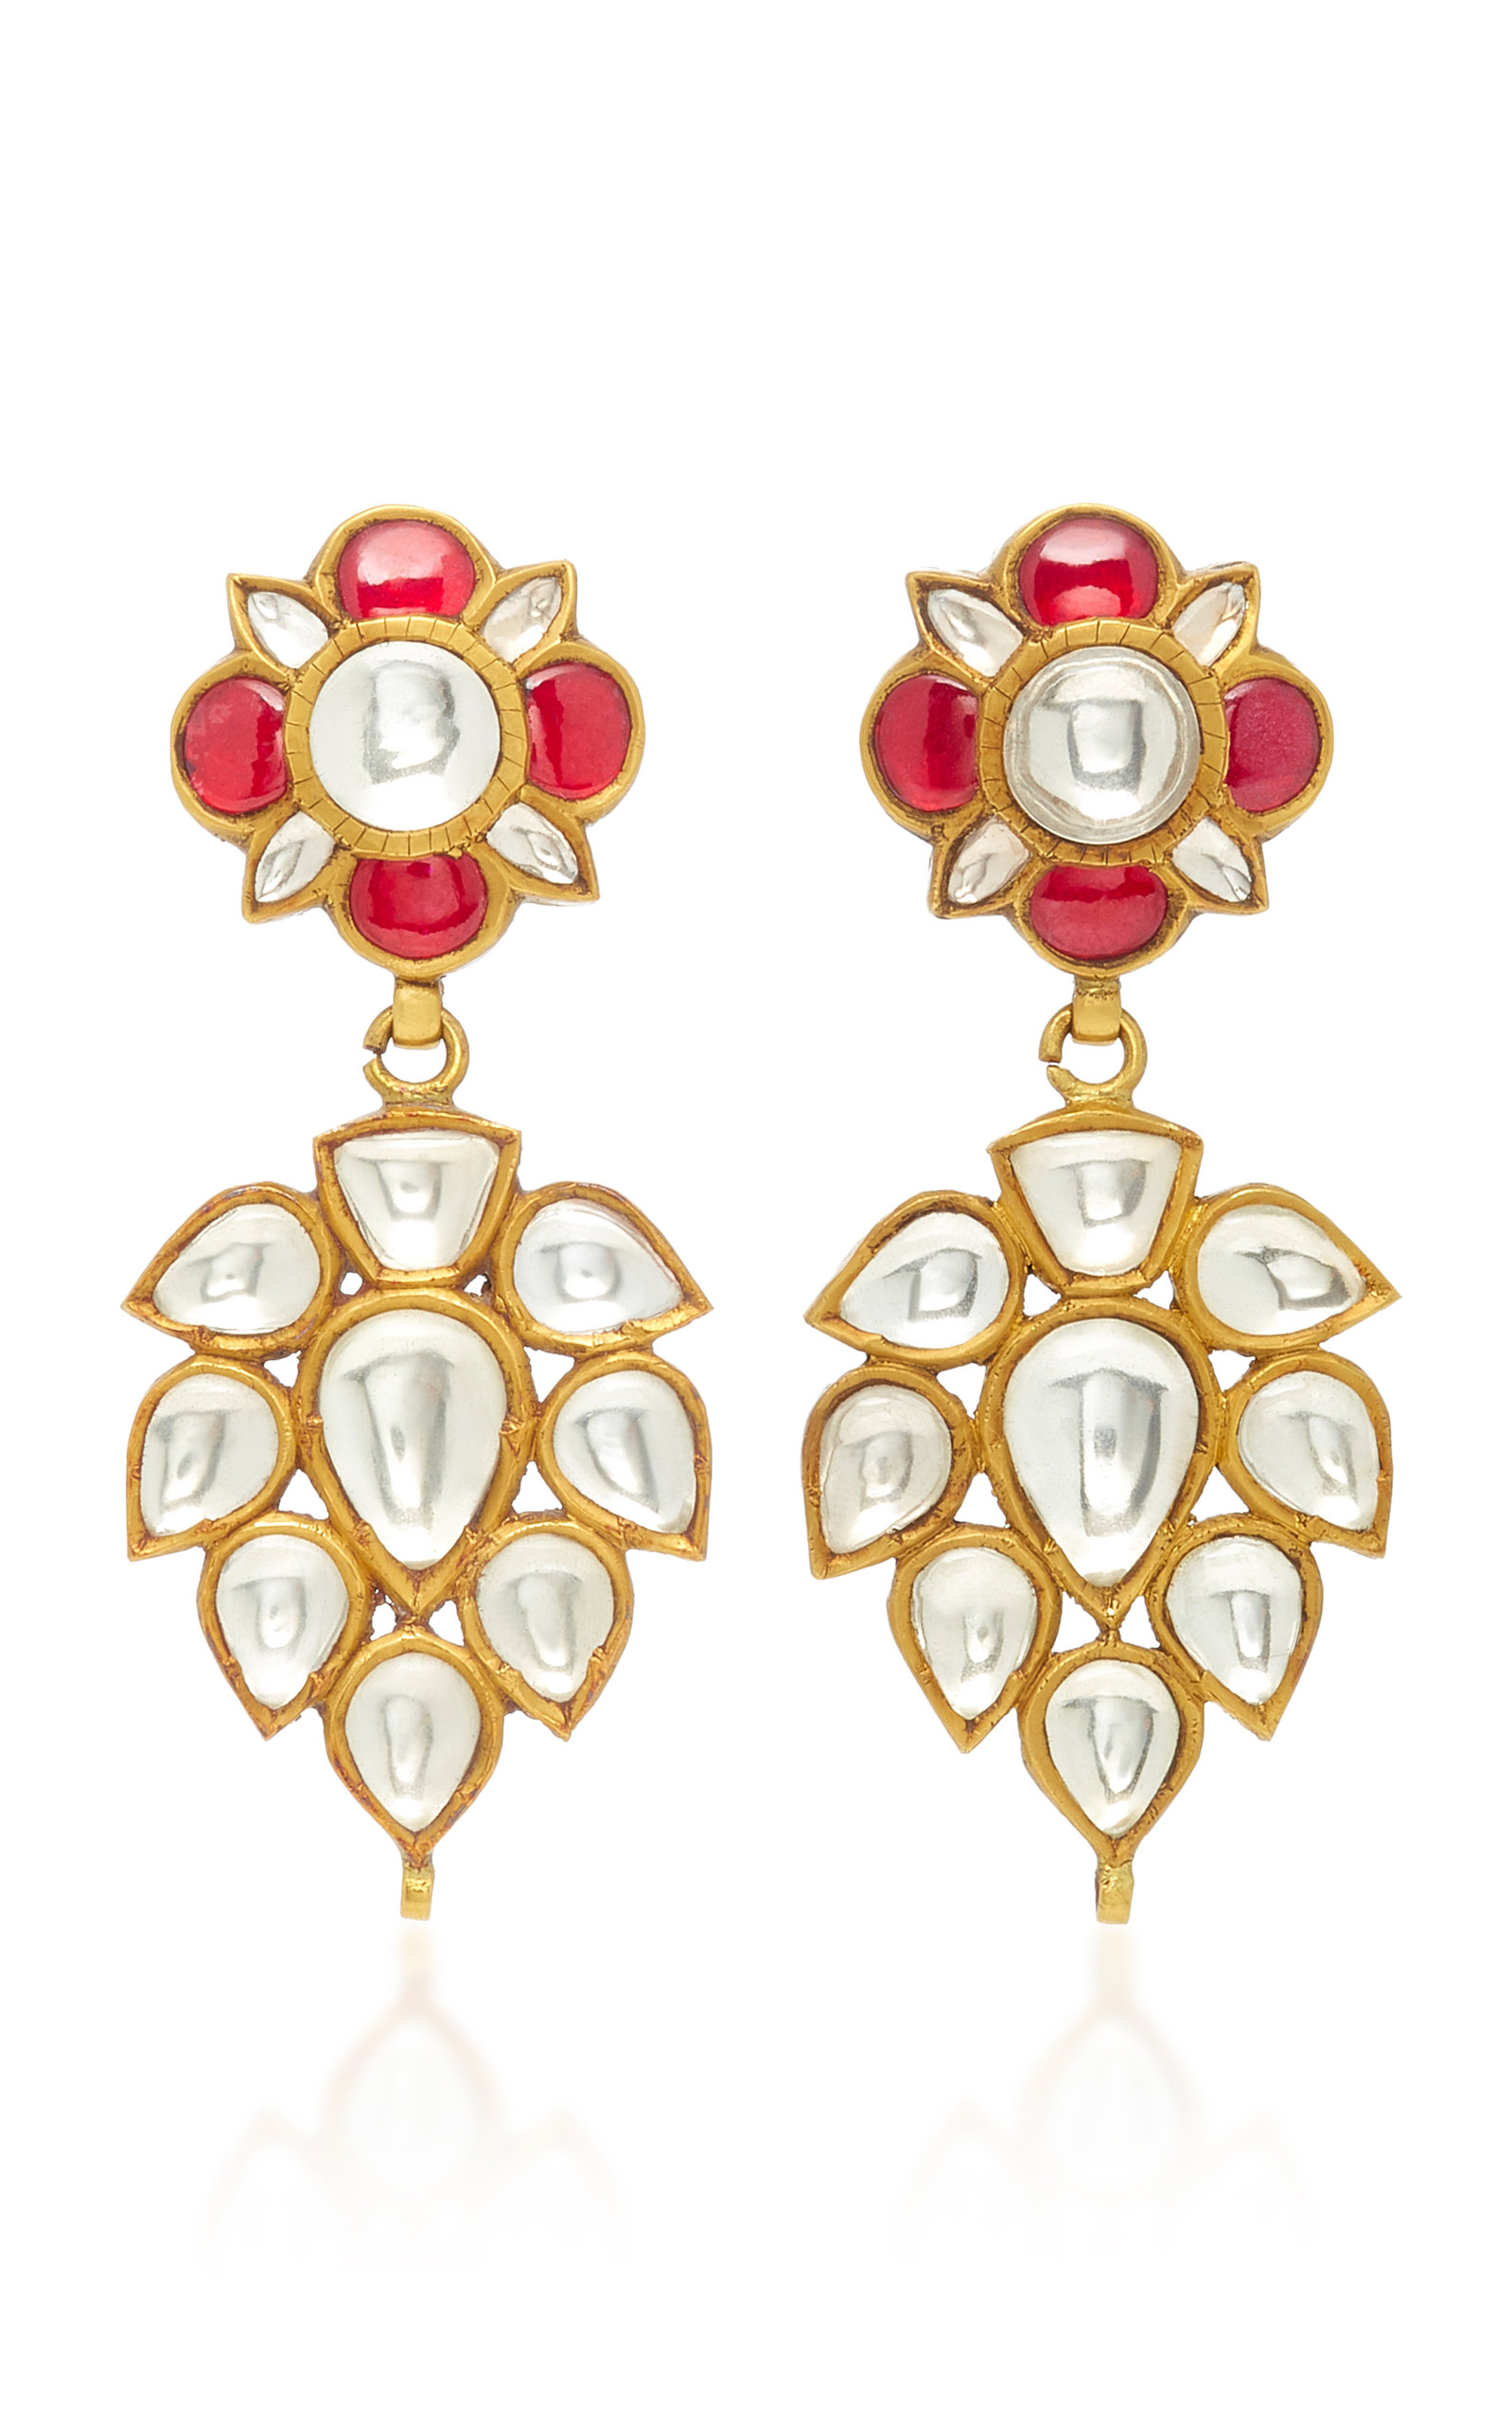 pinterest on amrapalijewels best jewellery amrapali earrings diamond pieces jewerly images and pendant polki